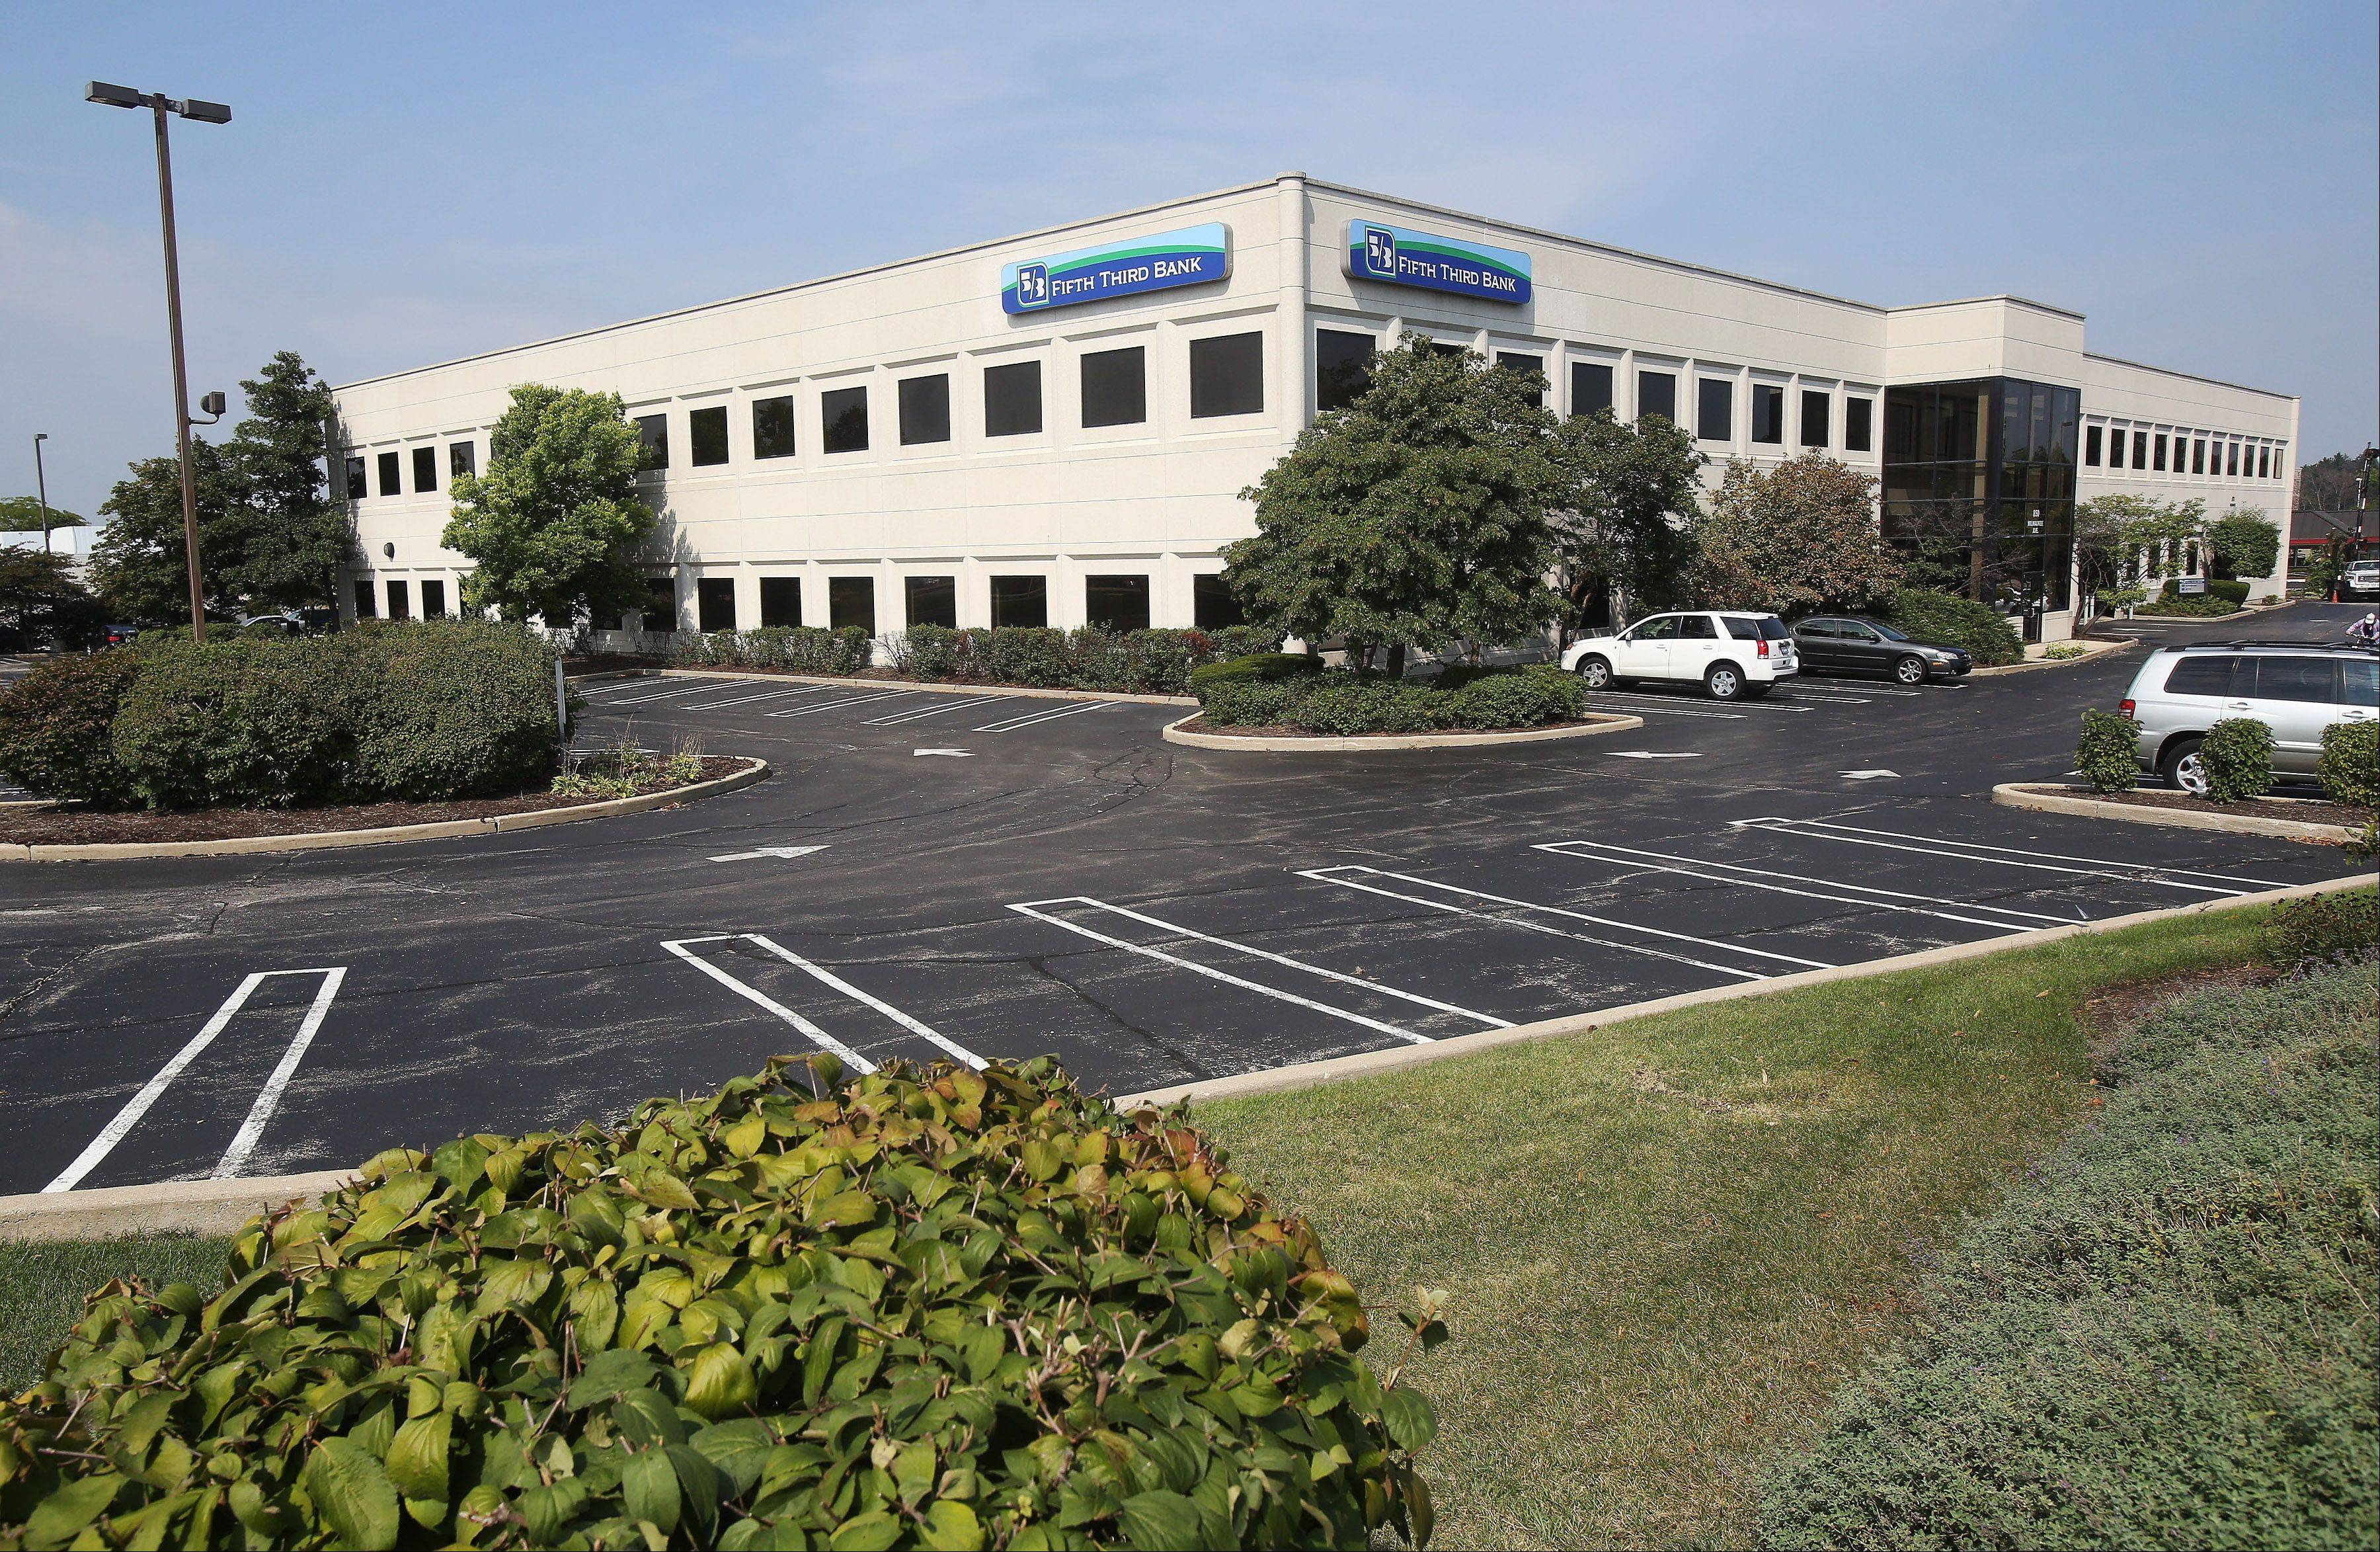 A developer is seeking village approval to tear down the two-story Weiss office building near Westfield Hawthorn mall in Vernon Hills and replace it with restaurants and retail uses.